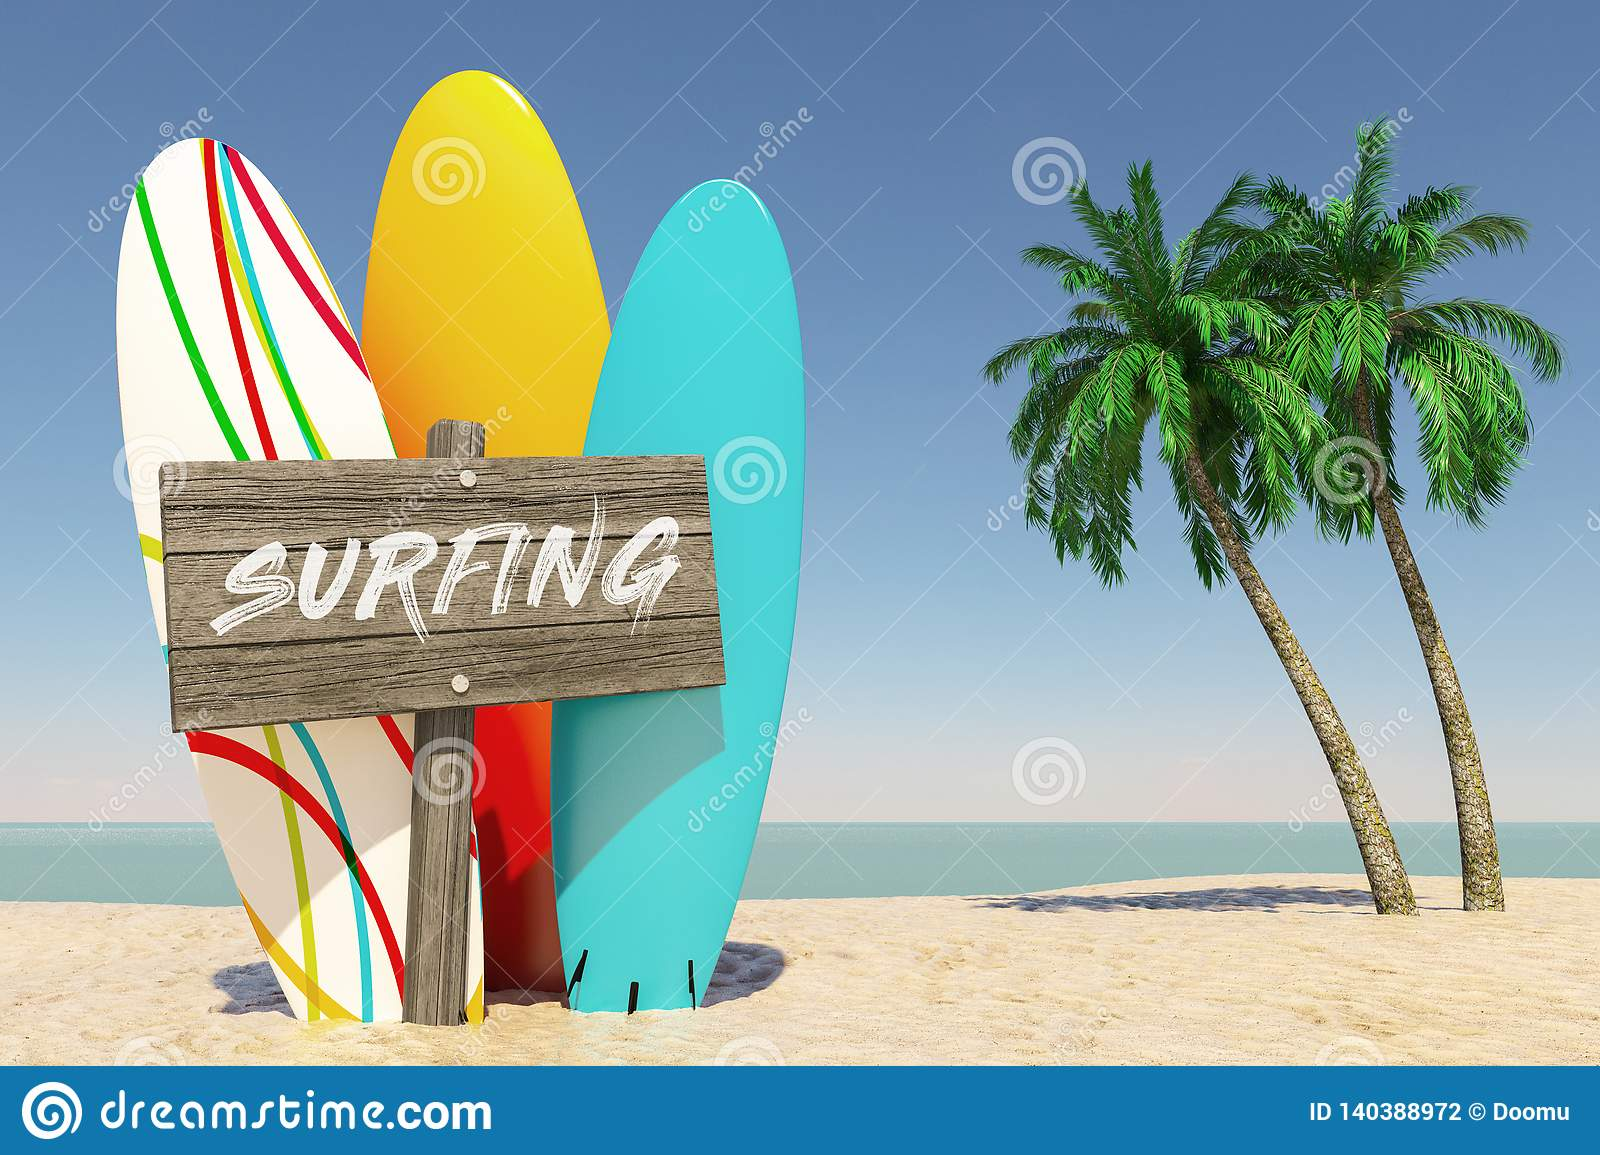 Tourism and Travel Concept. Colorful Summer Surfboards with Surfing Wooden Direction Signbard in Tropical Paradise Beach with